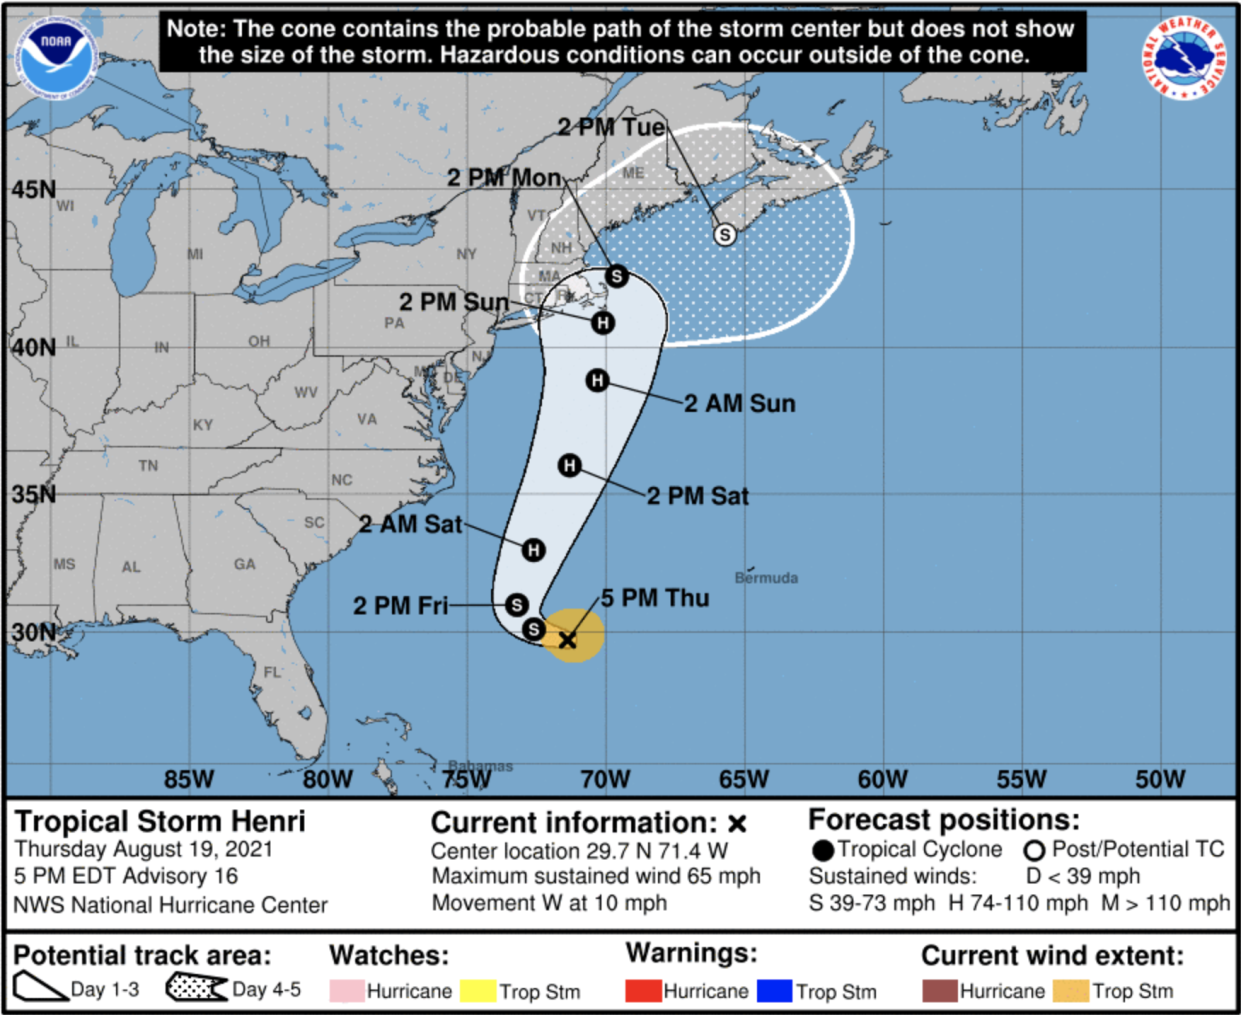 Tropical Storm Henri could strengthen into a hurricane as it heads for the New England area.